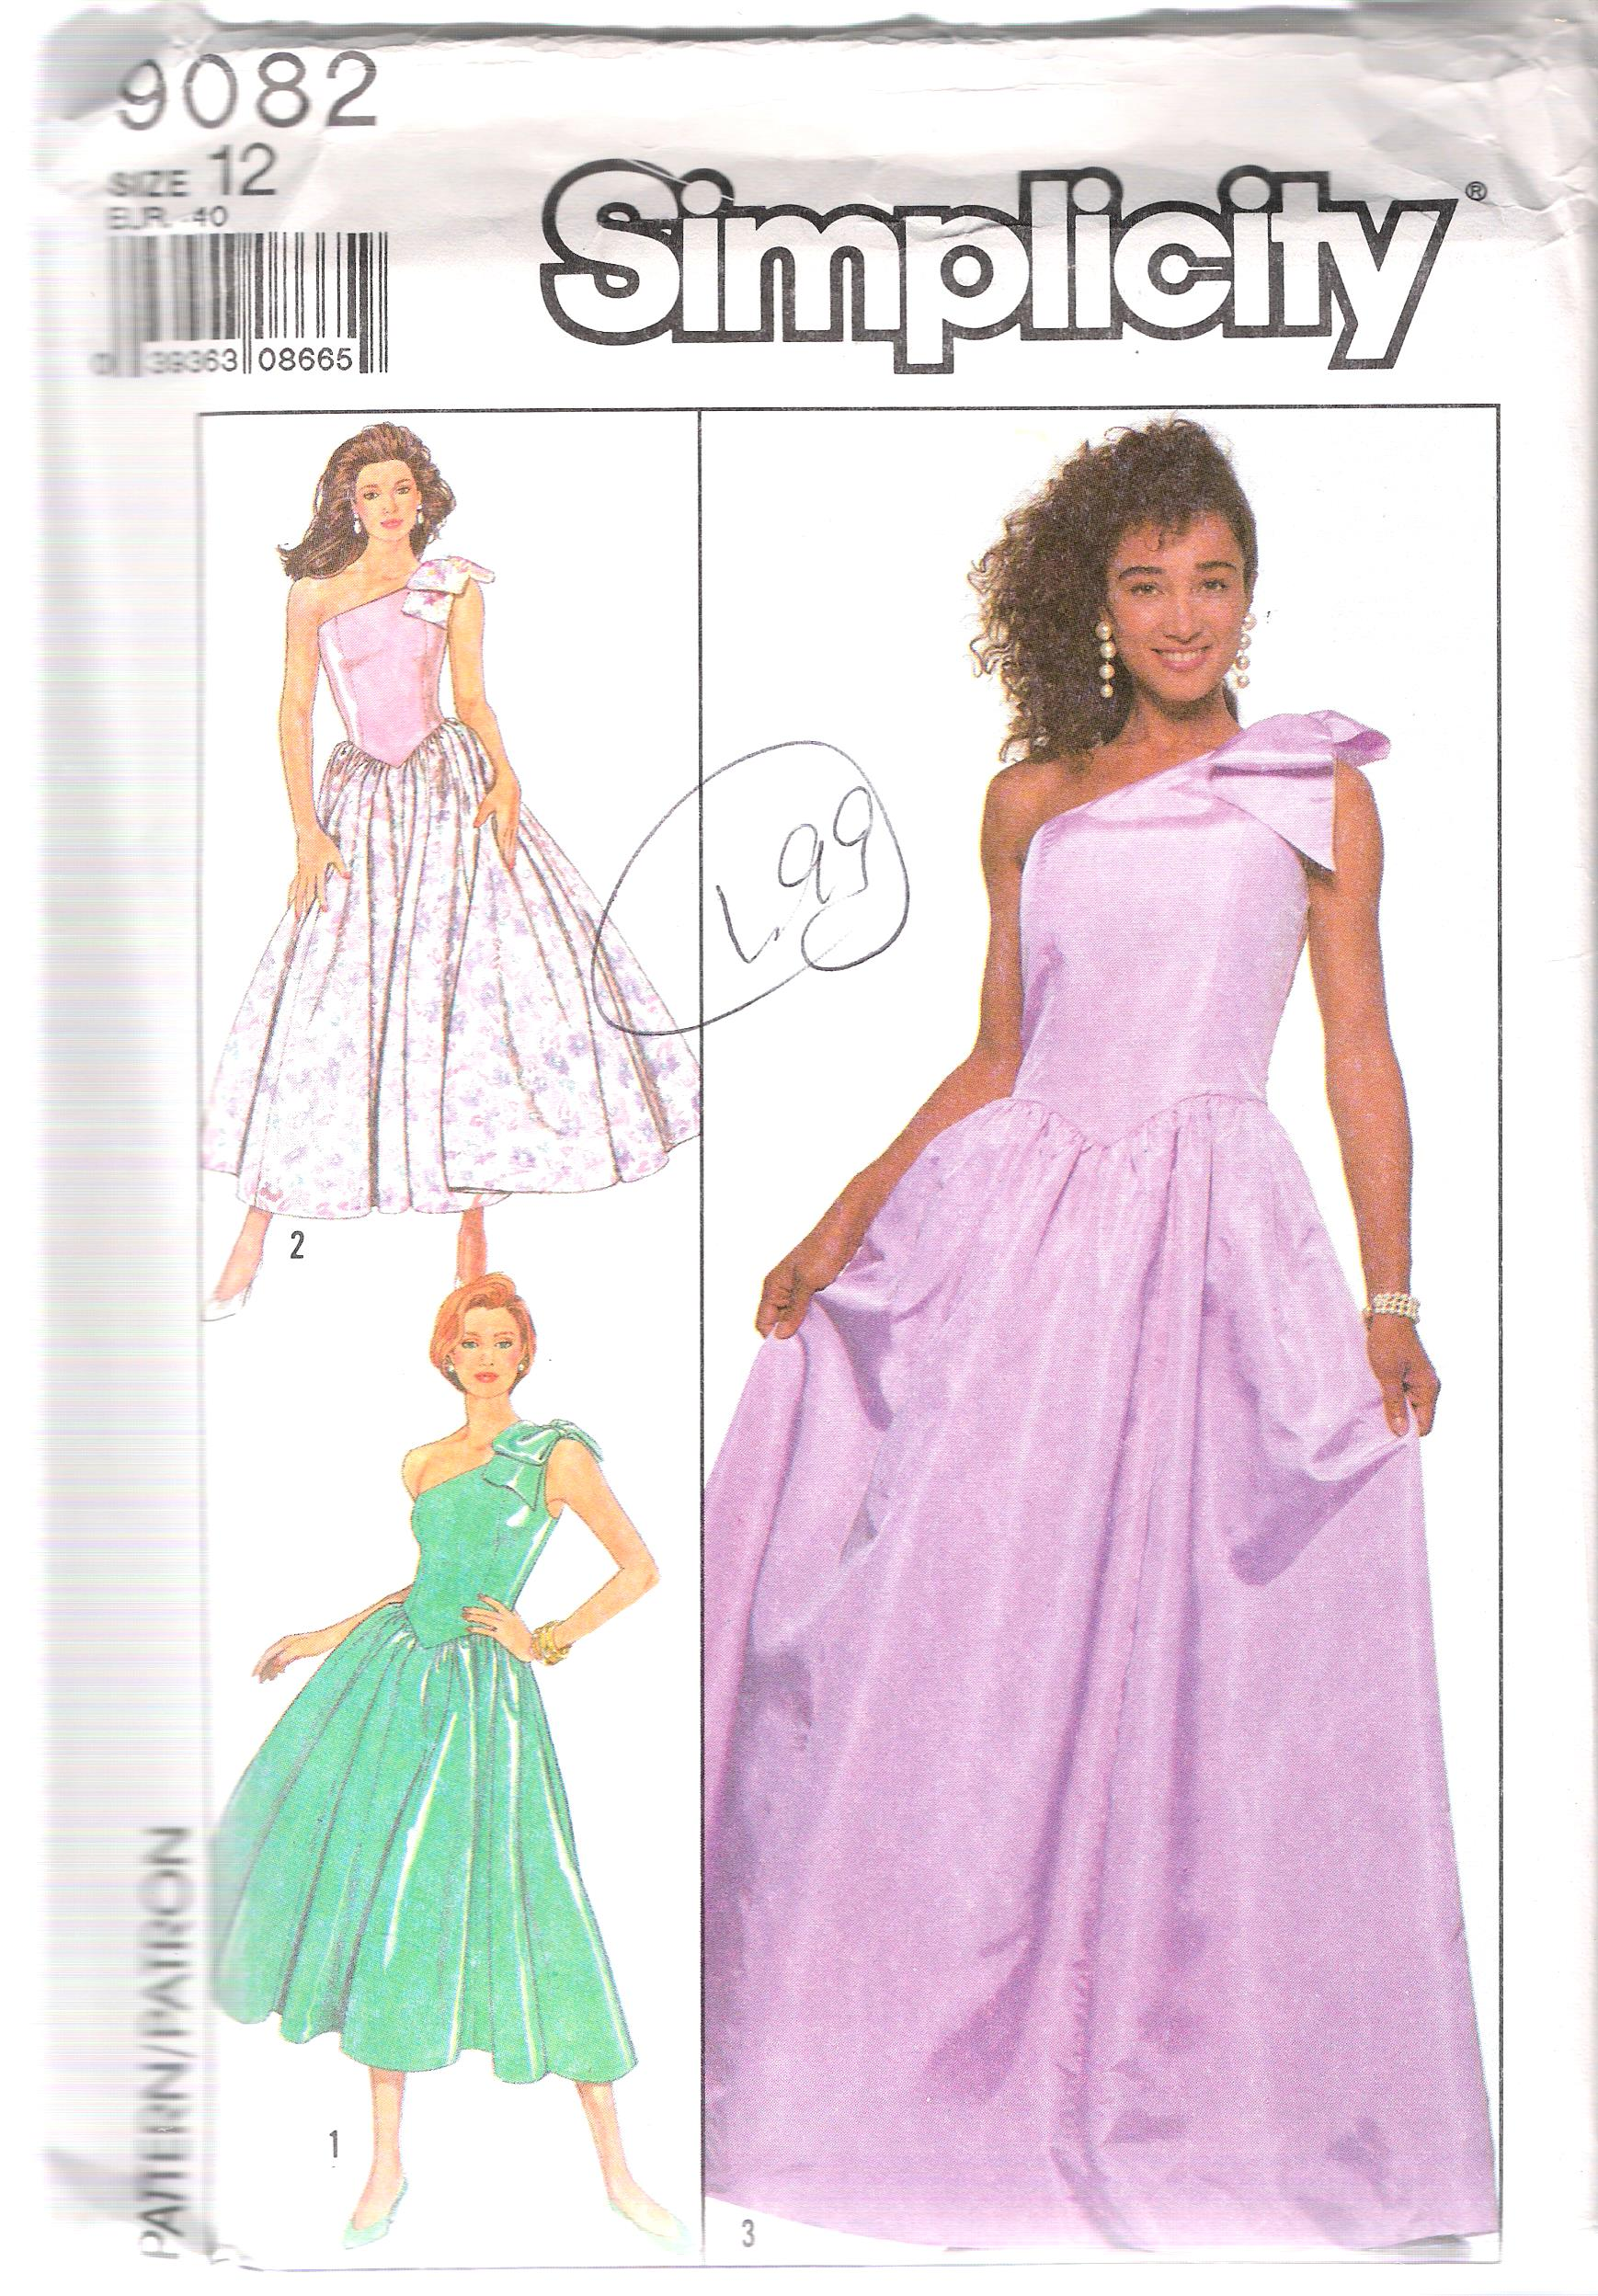 9082 Simplicity SEWING PATTERN Evening Party DRESS SIZE 12